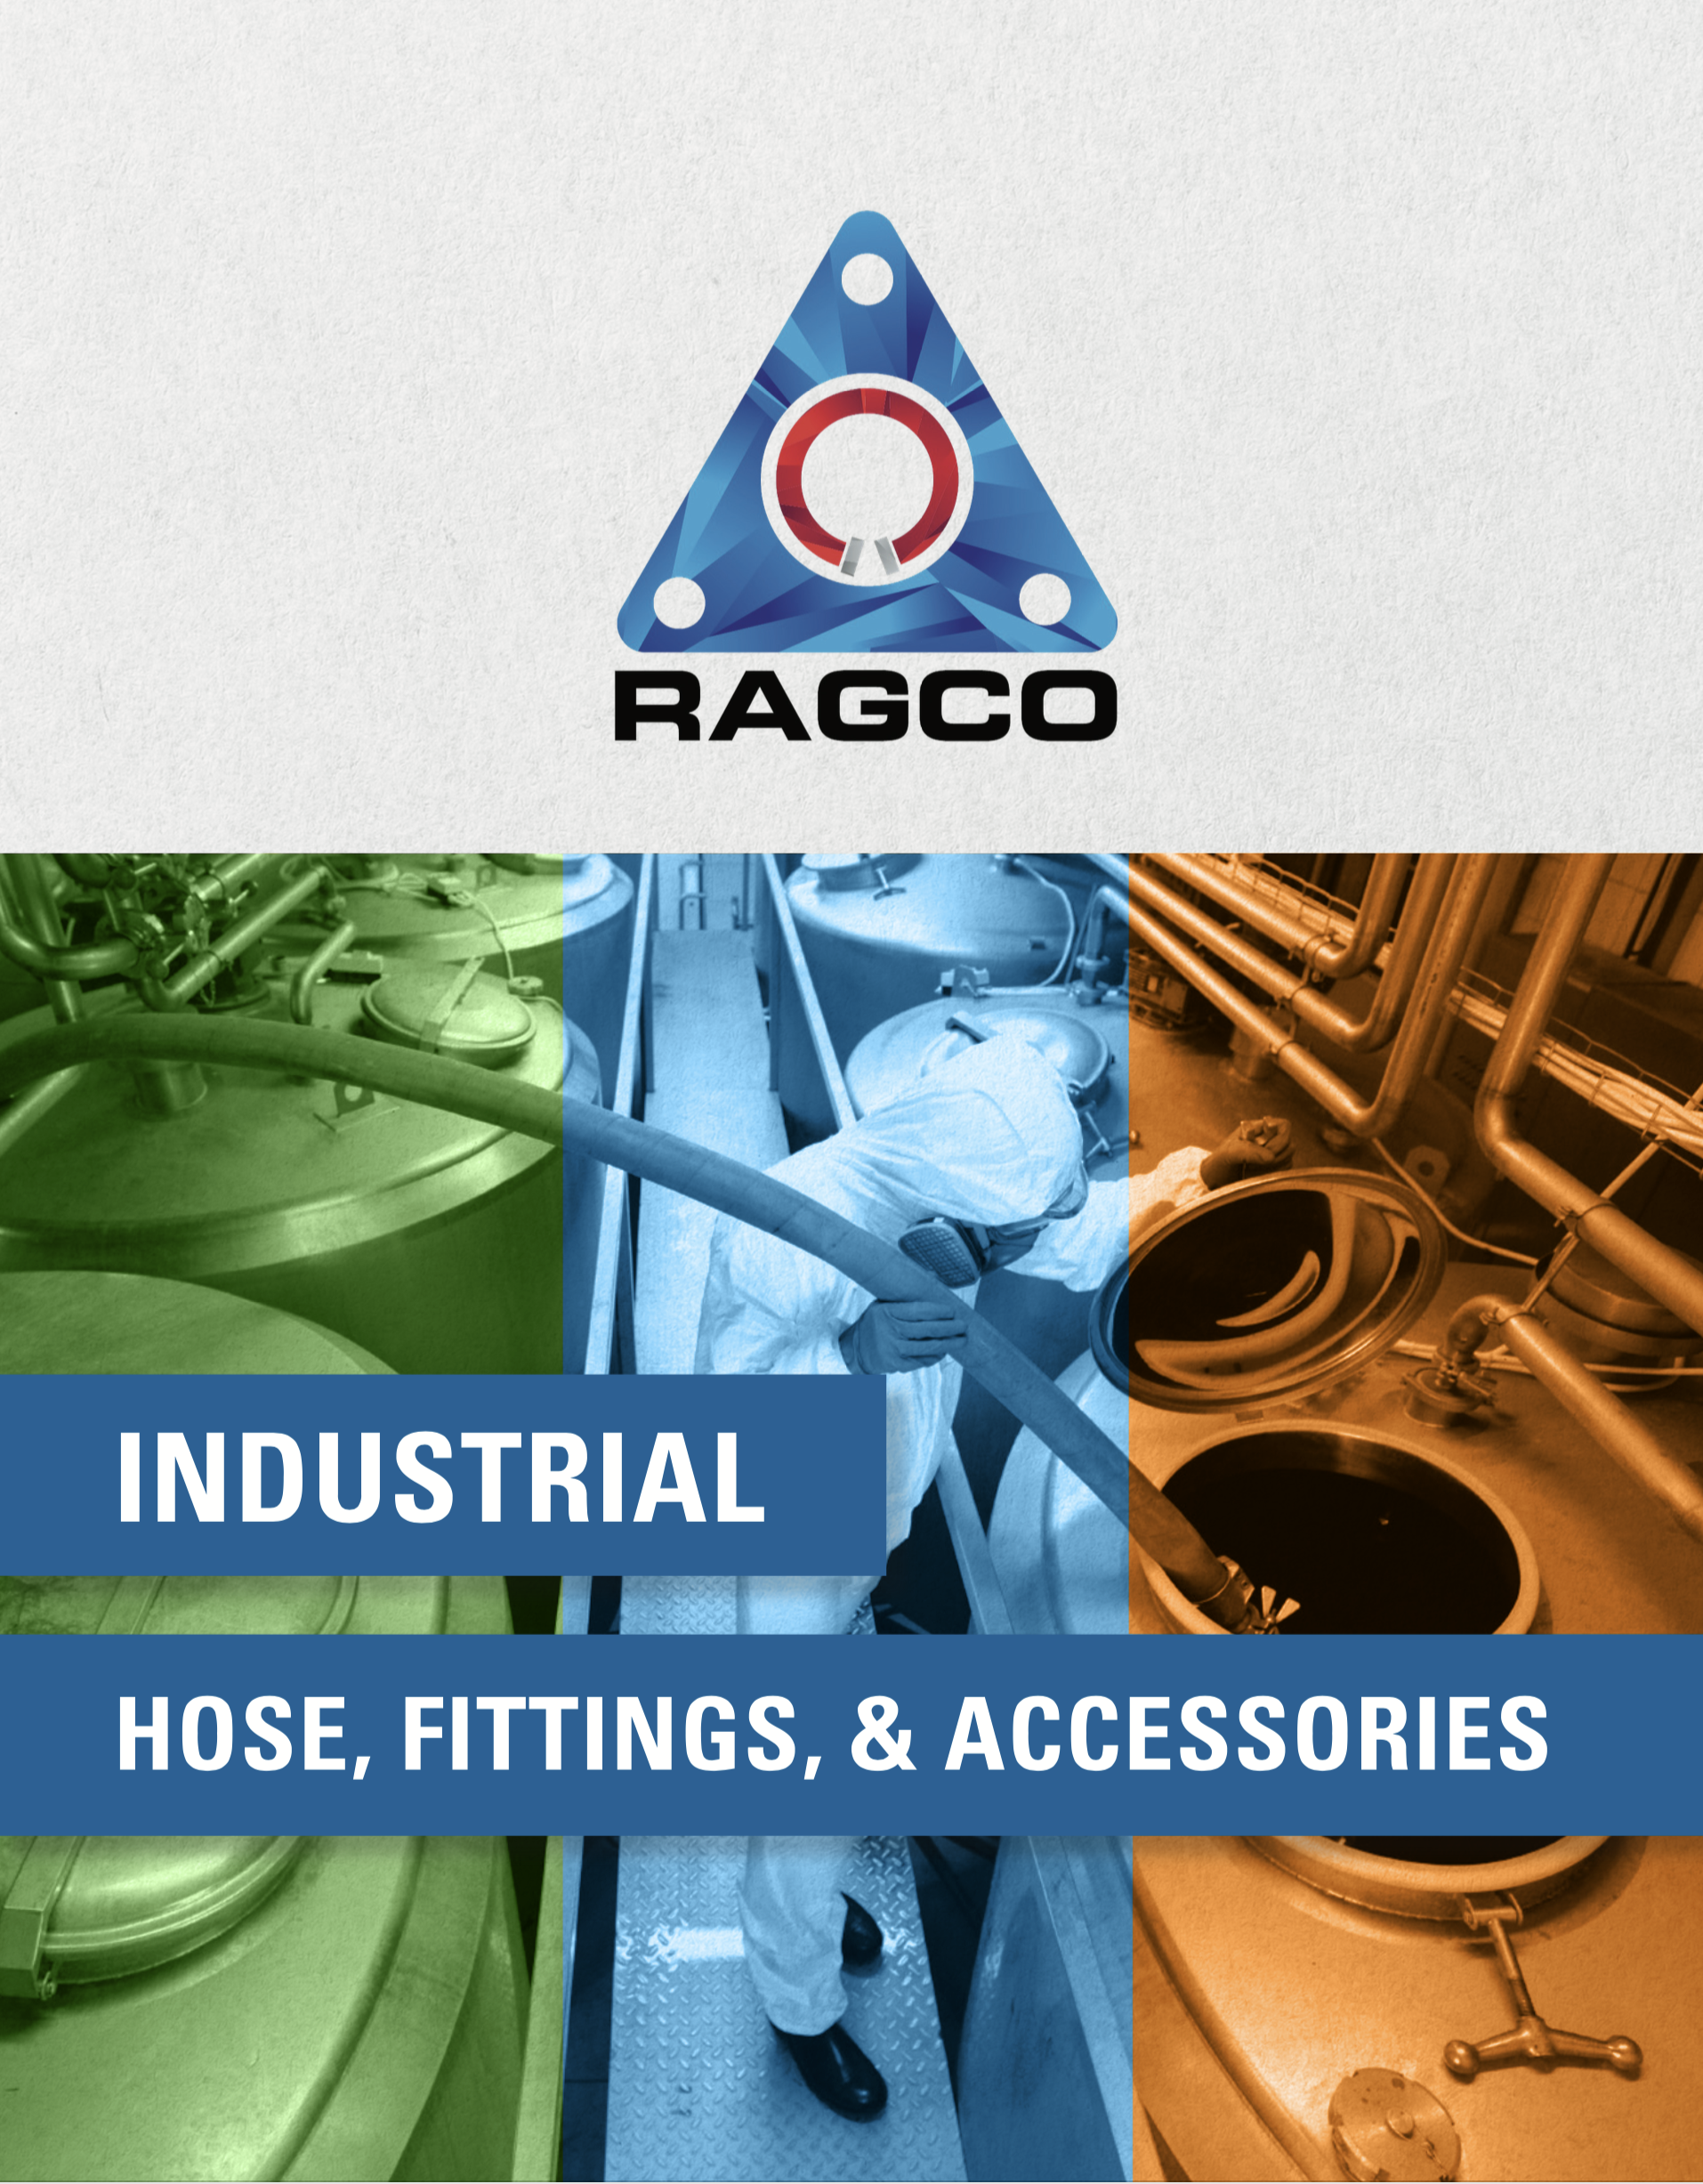 Industrial Hose, Fittings, & Accessories